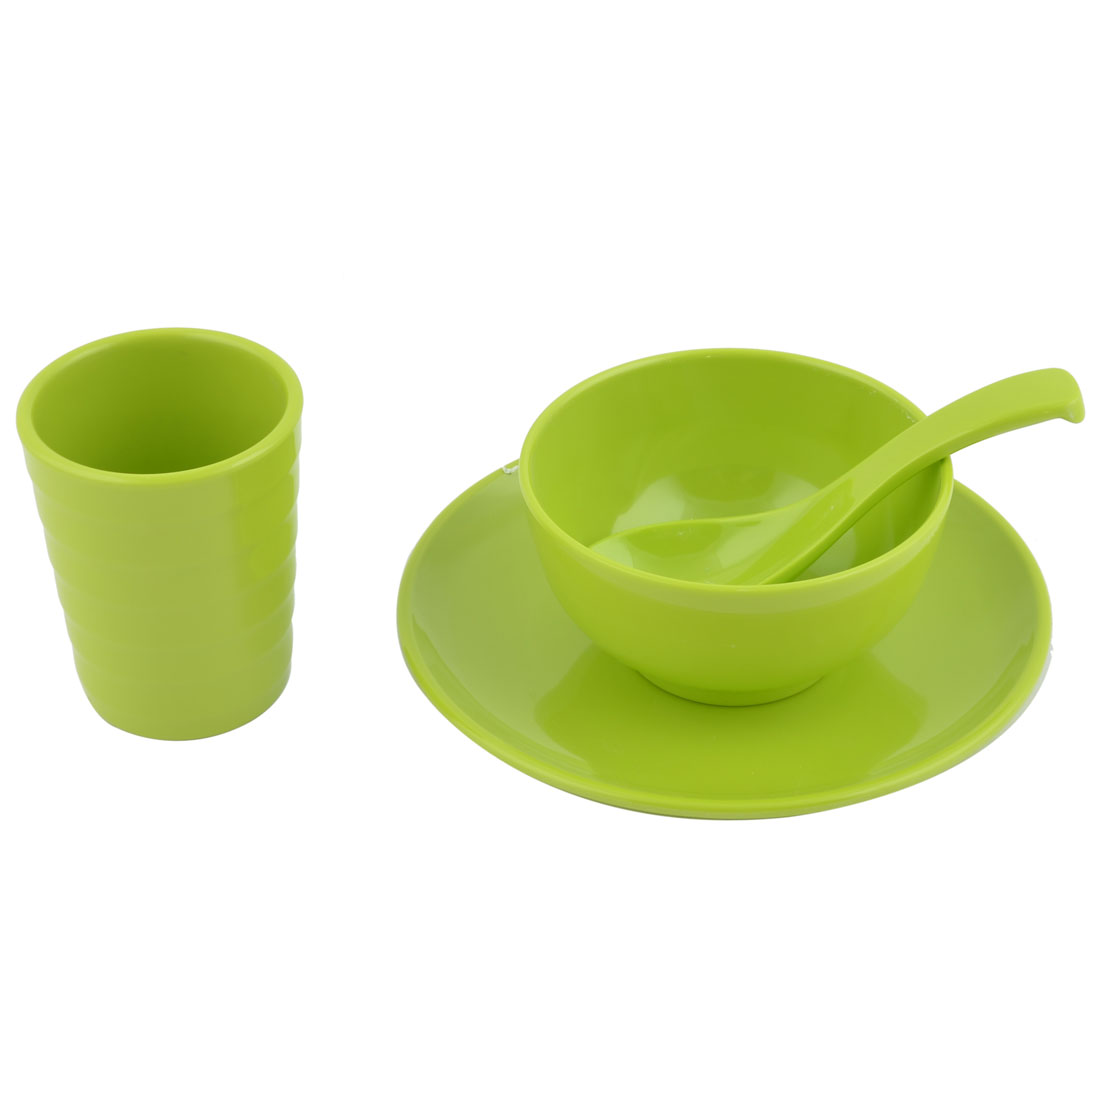 Hotel Restaurant Plastic Dinnerware Tableware Cup Spoon Bowl Plate Green 4 in 1